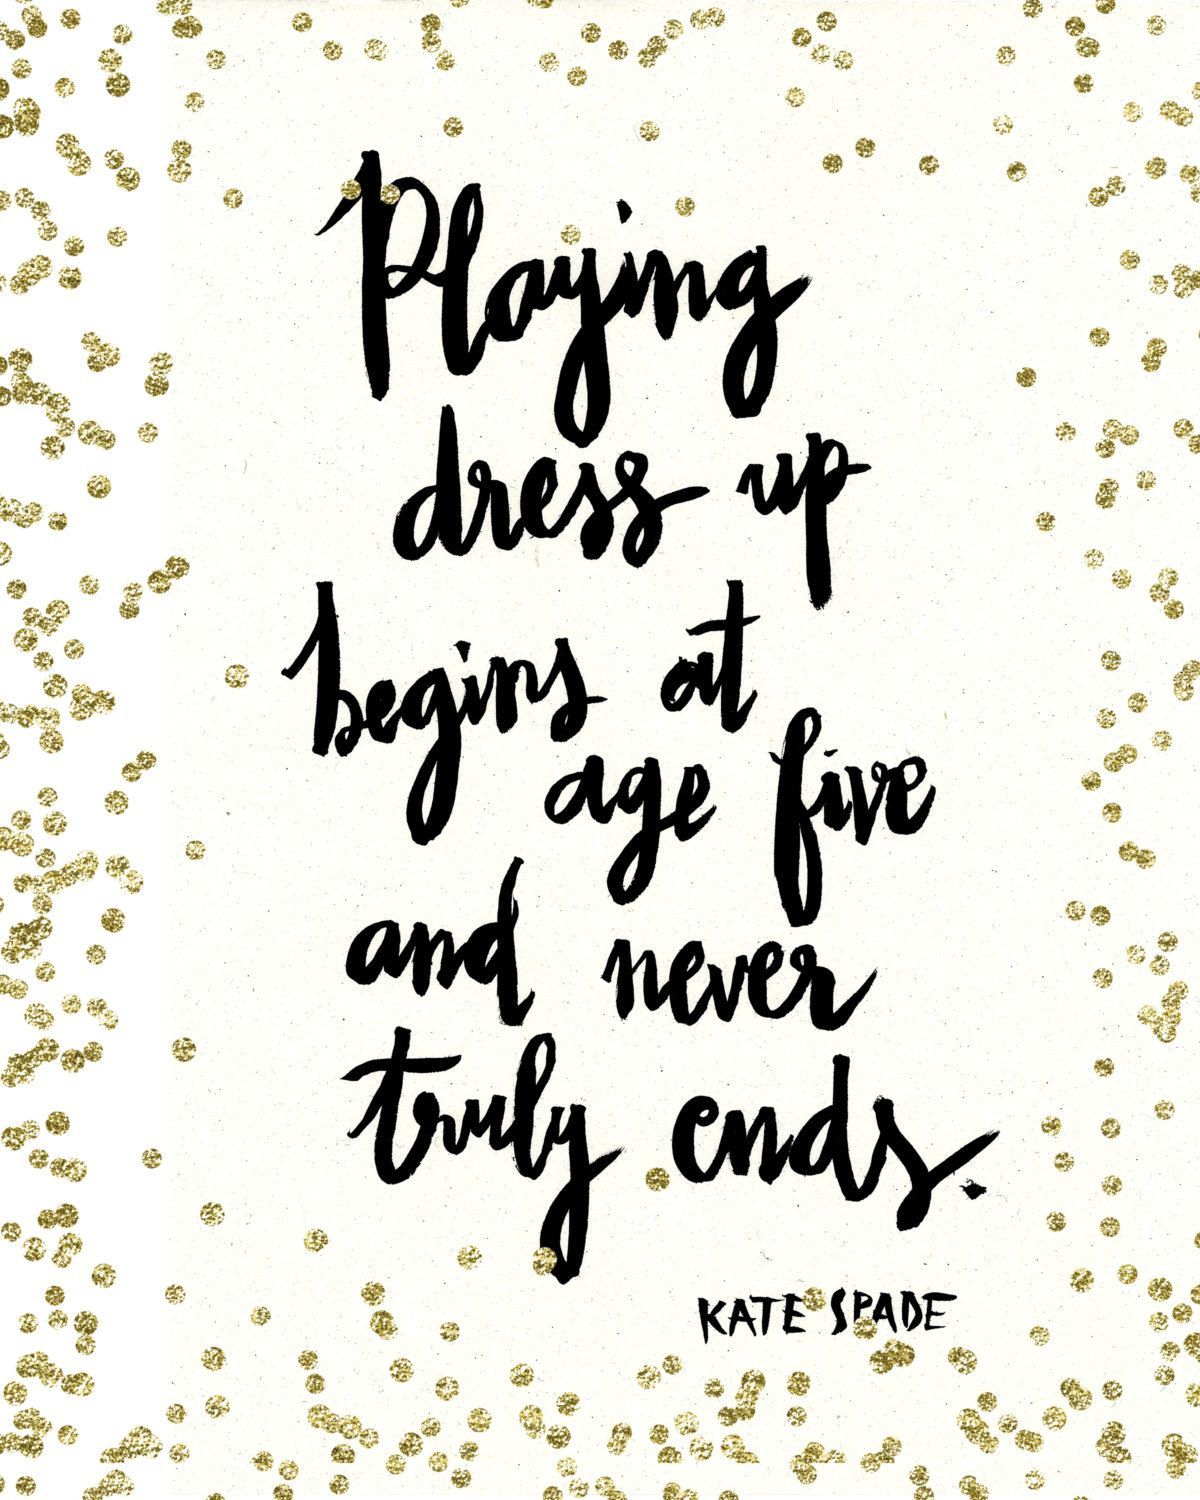 Quot Playing Dress Up Begins At Age Five And Never Truly Ends Quot Kate Spade Kate Spade Dress Fashion Quotes Kate Spade Fashion Quotes [ 1500 x 1200 Pixel ]